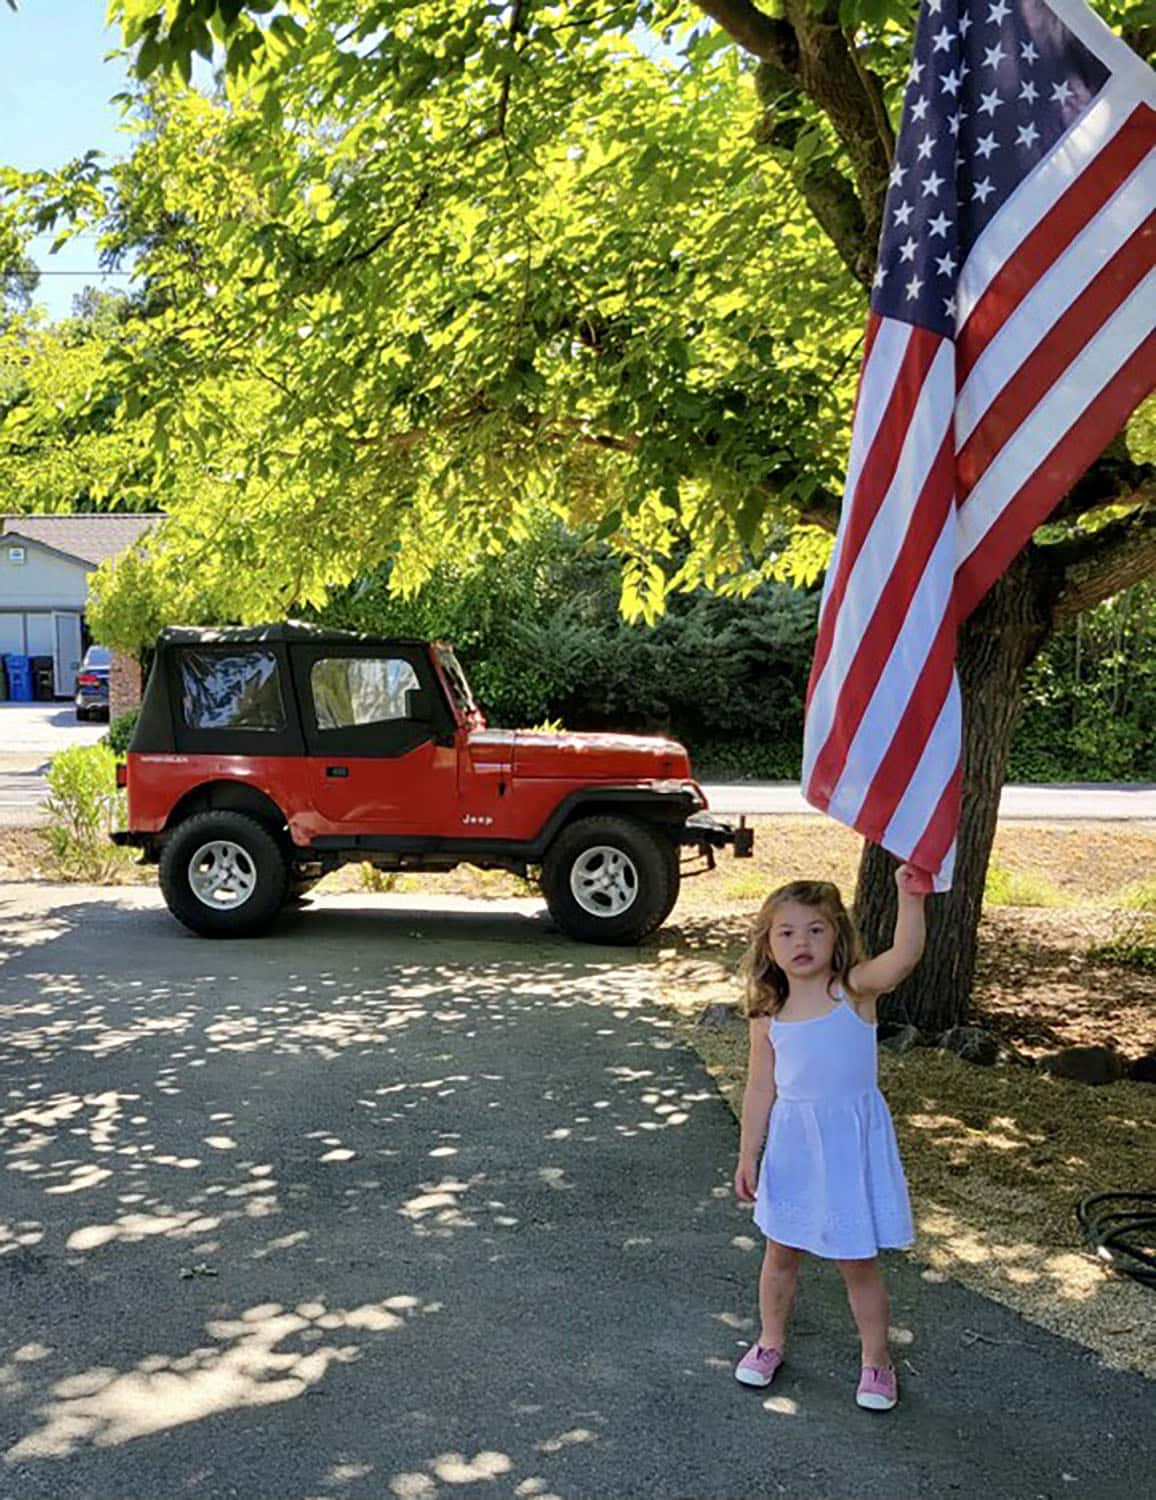 Cindy Hattersley's granddaughter Summer with the flag